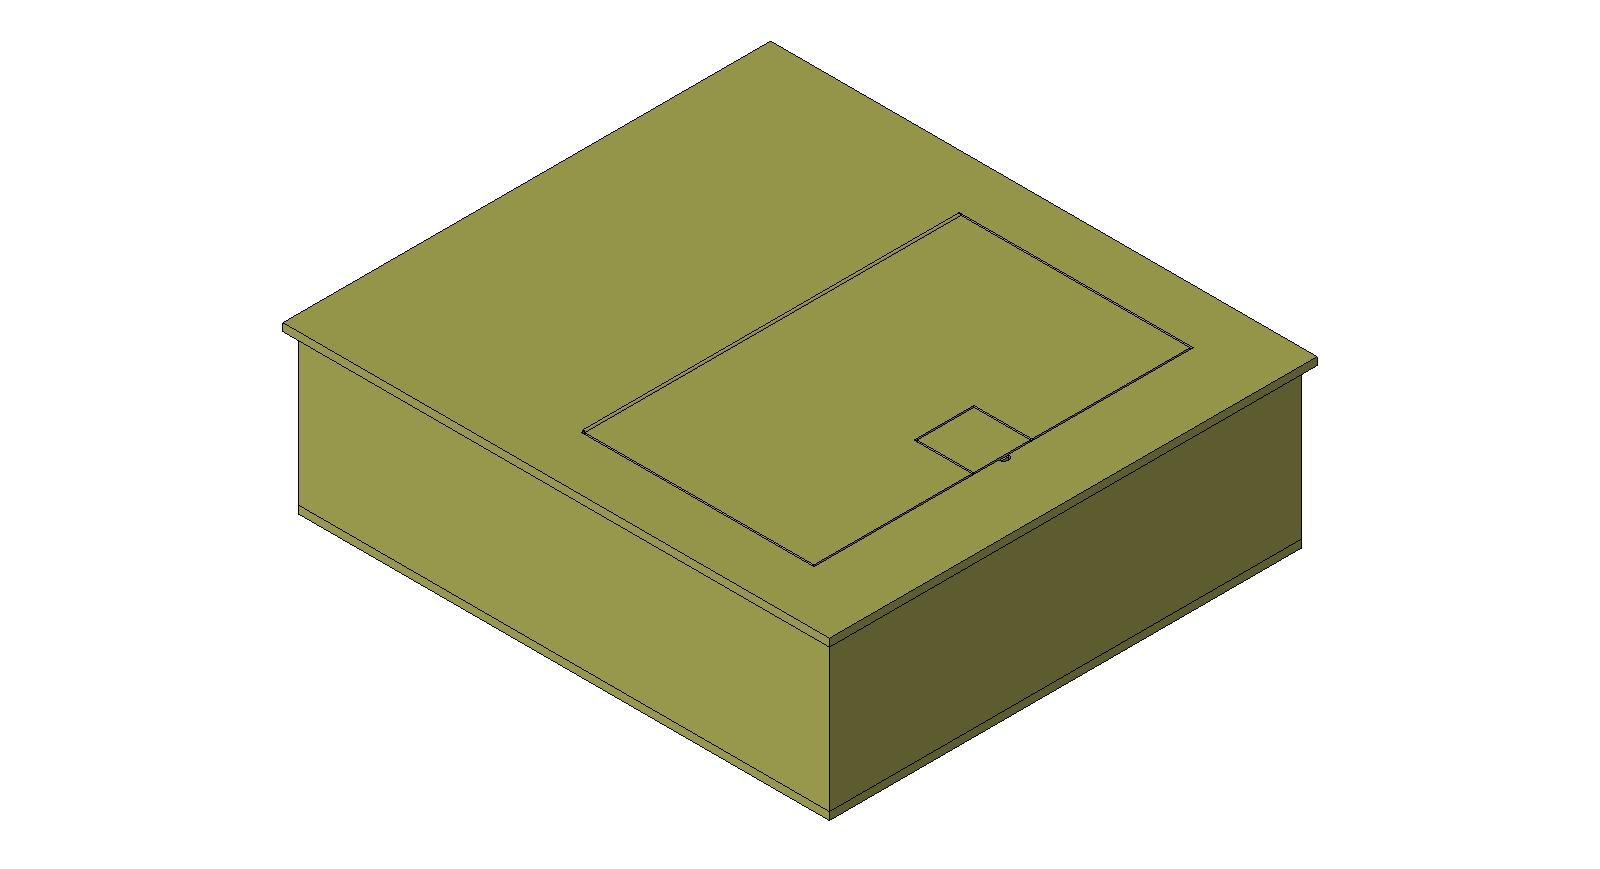 Bim Objects Families Electrical Devices Electrical